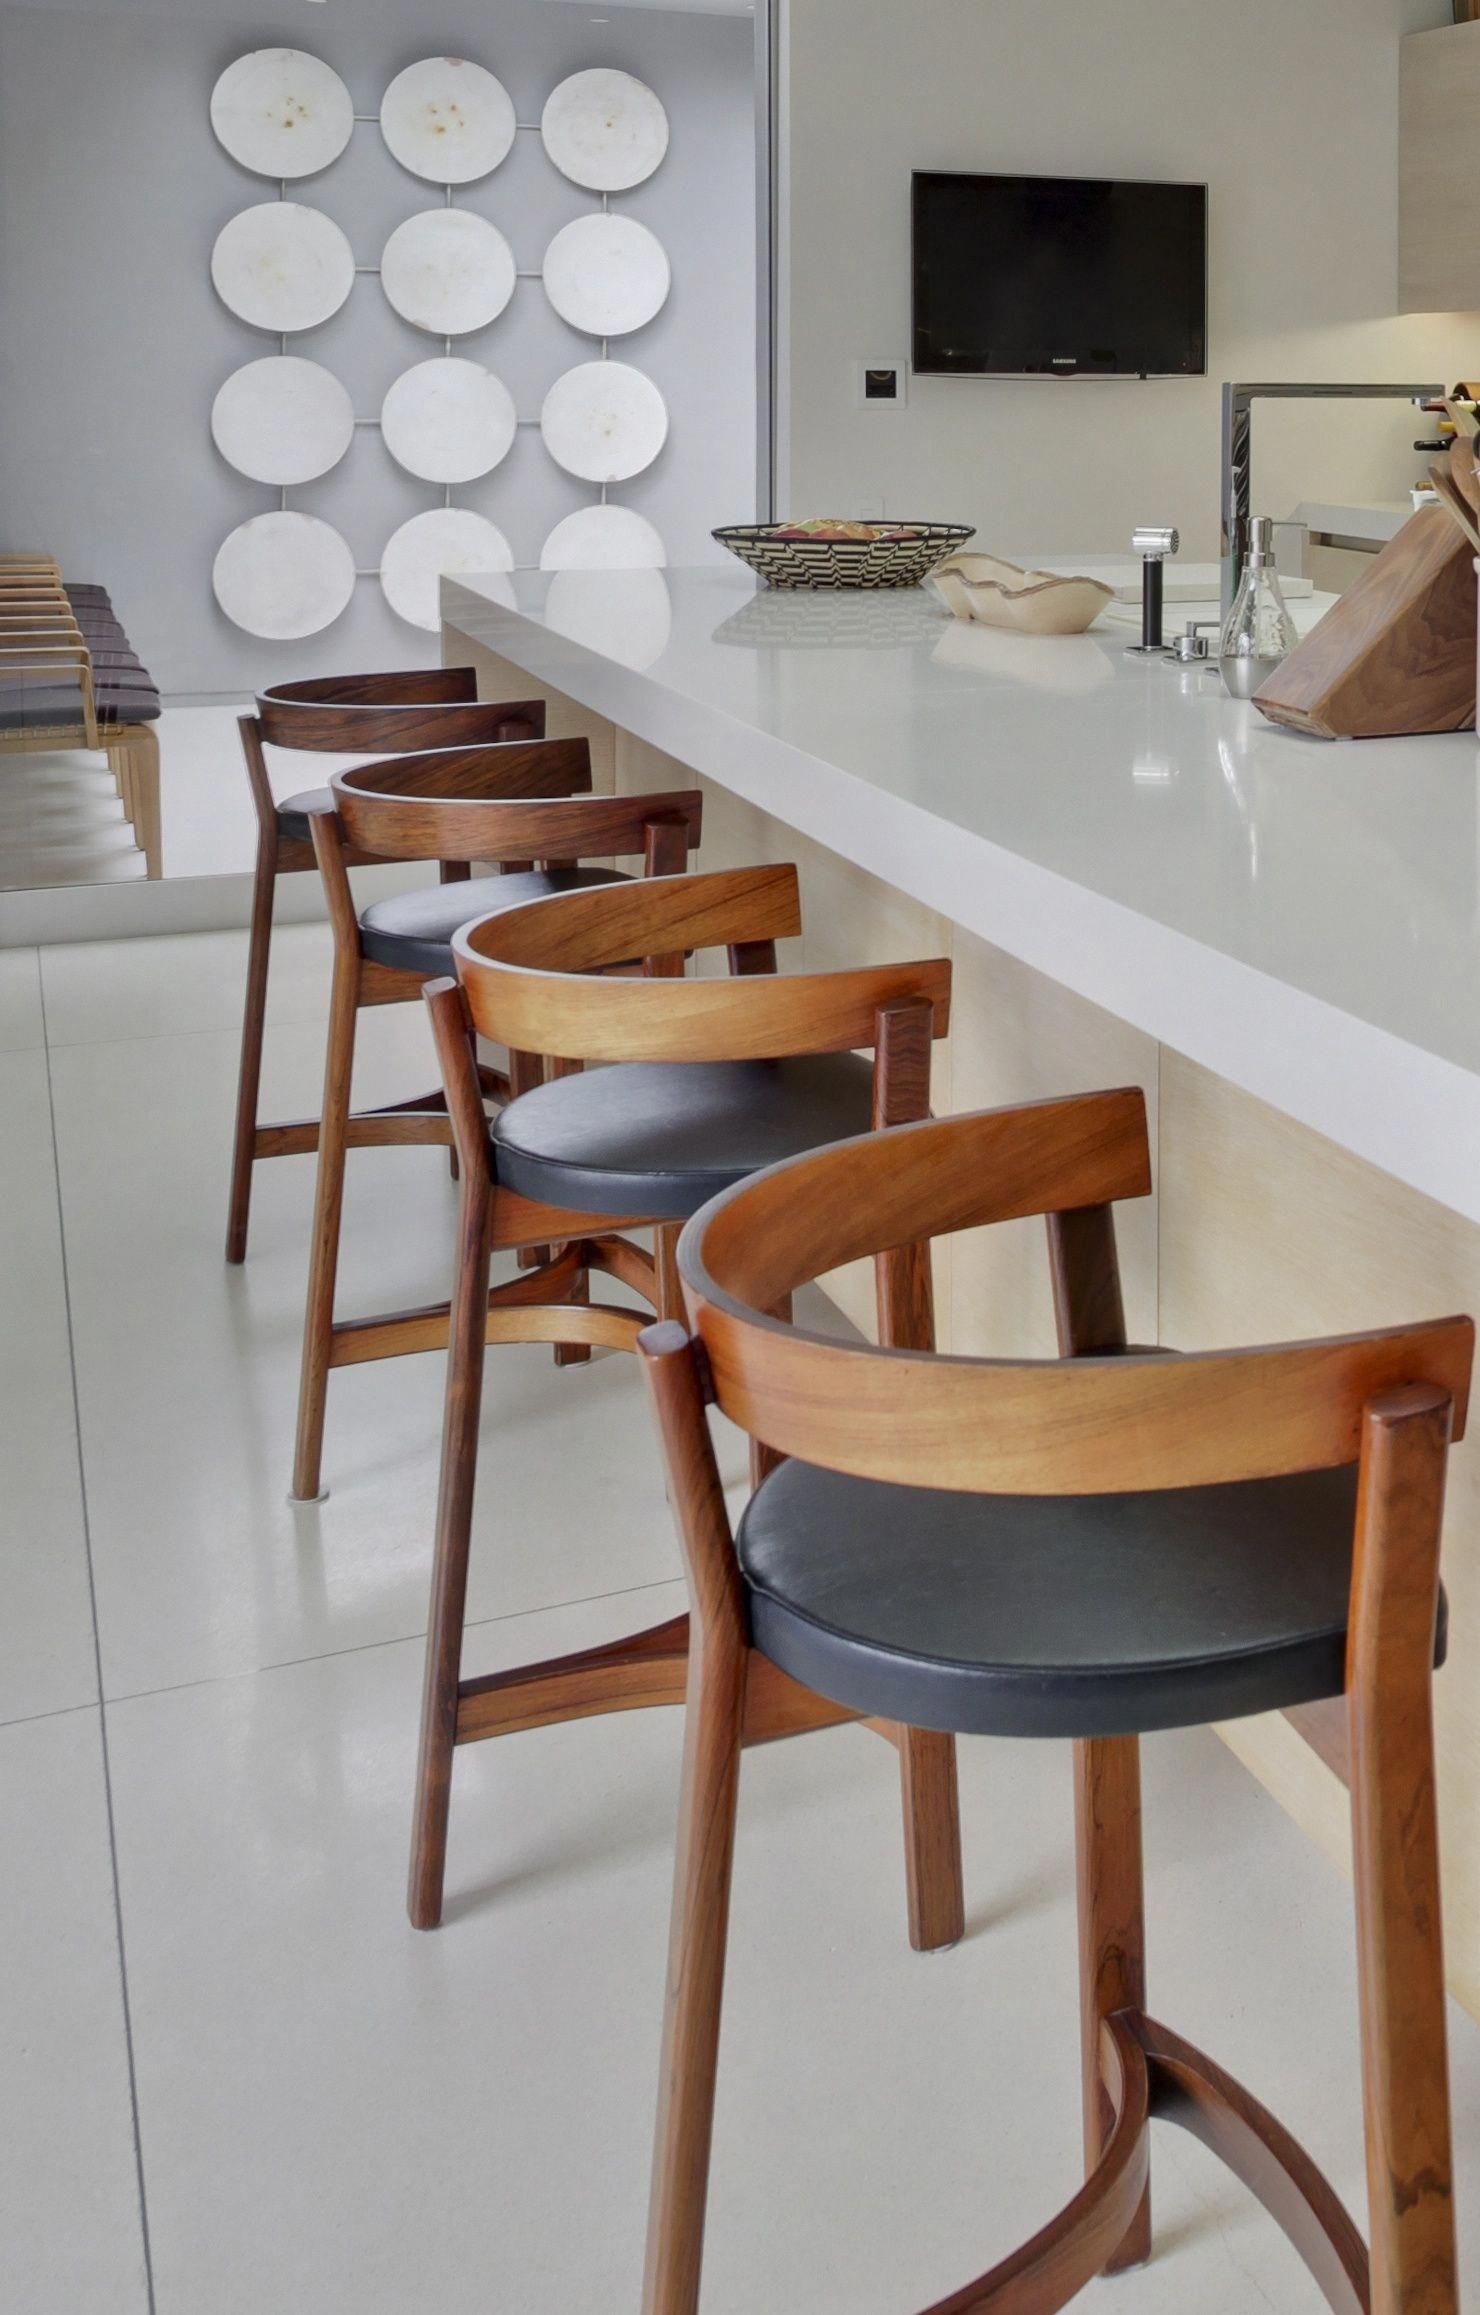 Kitchen The Kitchen Features Vintage European Barstools And An